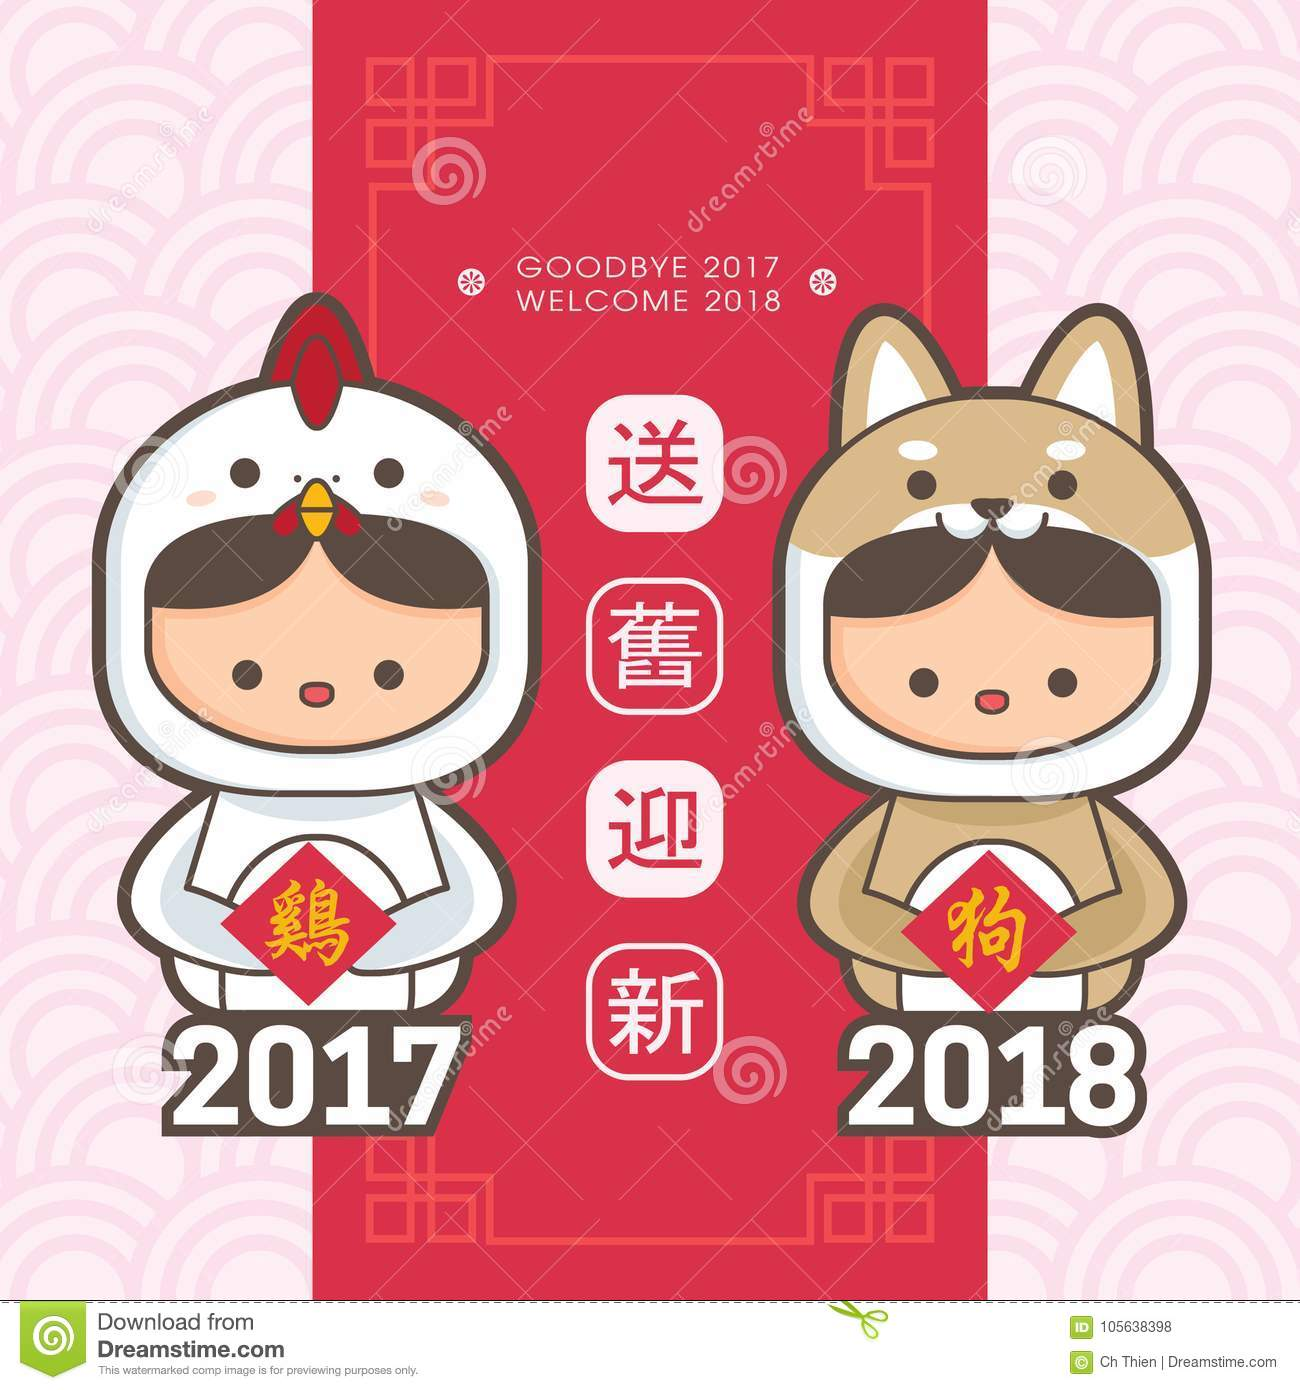 2018 Chinese New Year Greeting Card Template. Cute Boy And ...